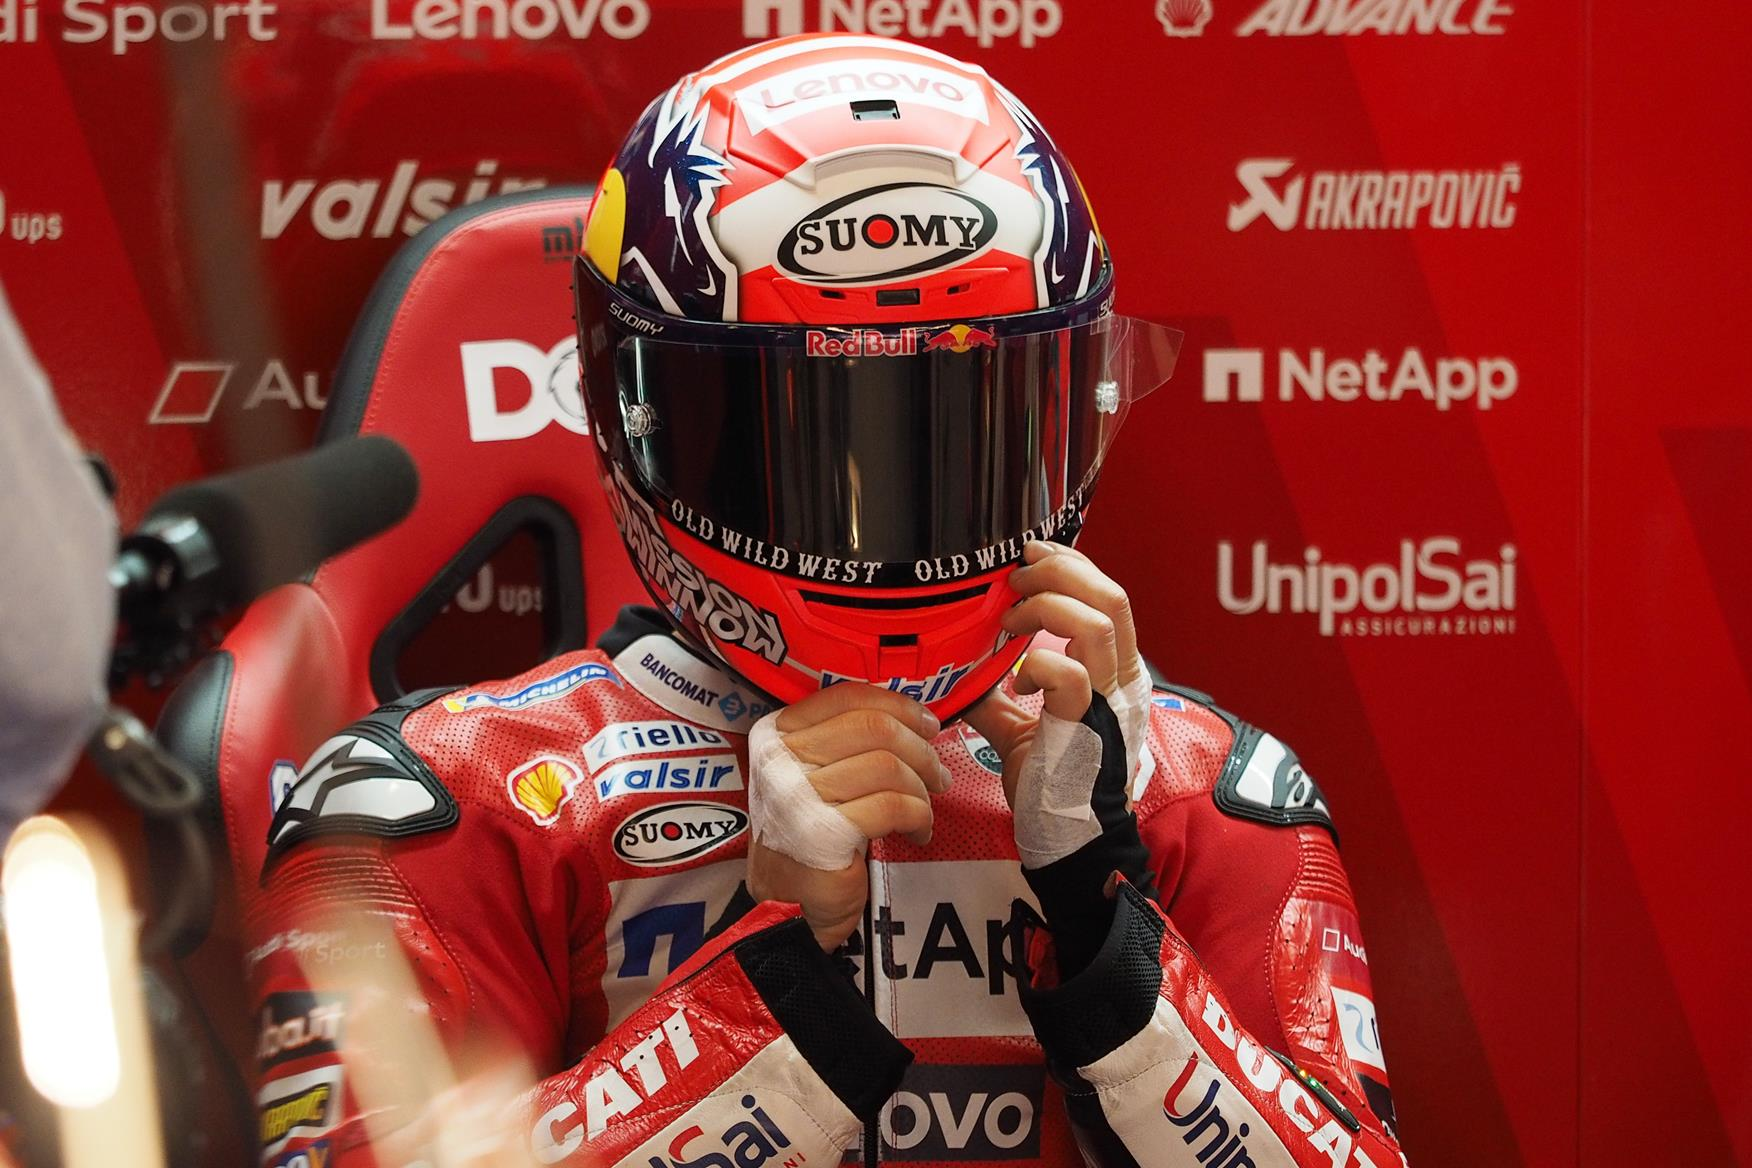 MotoGP: Top riders forced to use rival helmet brands